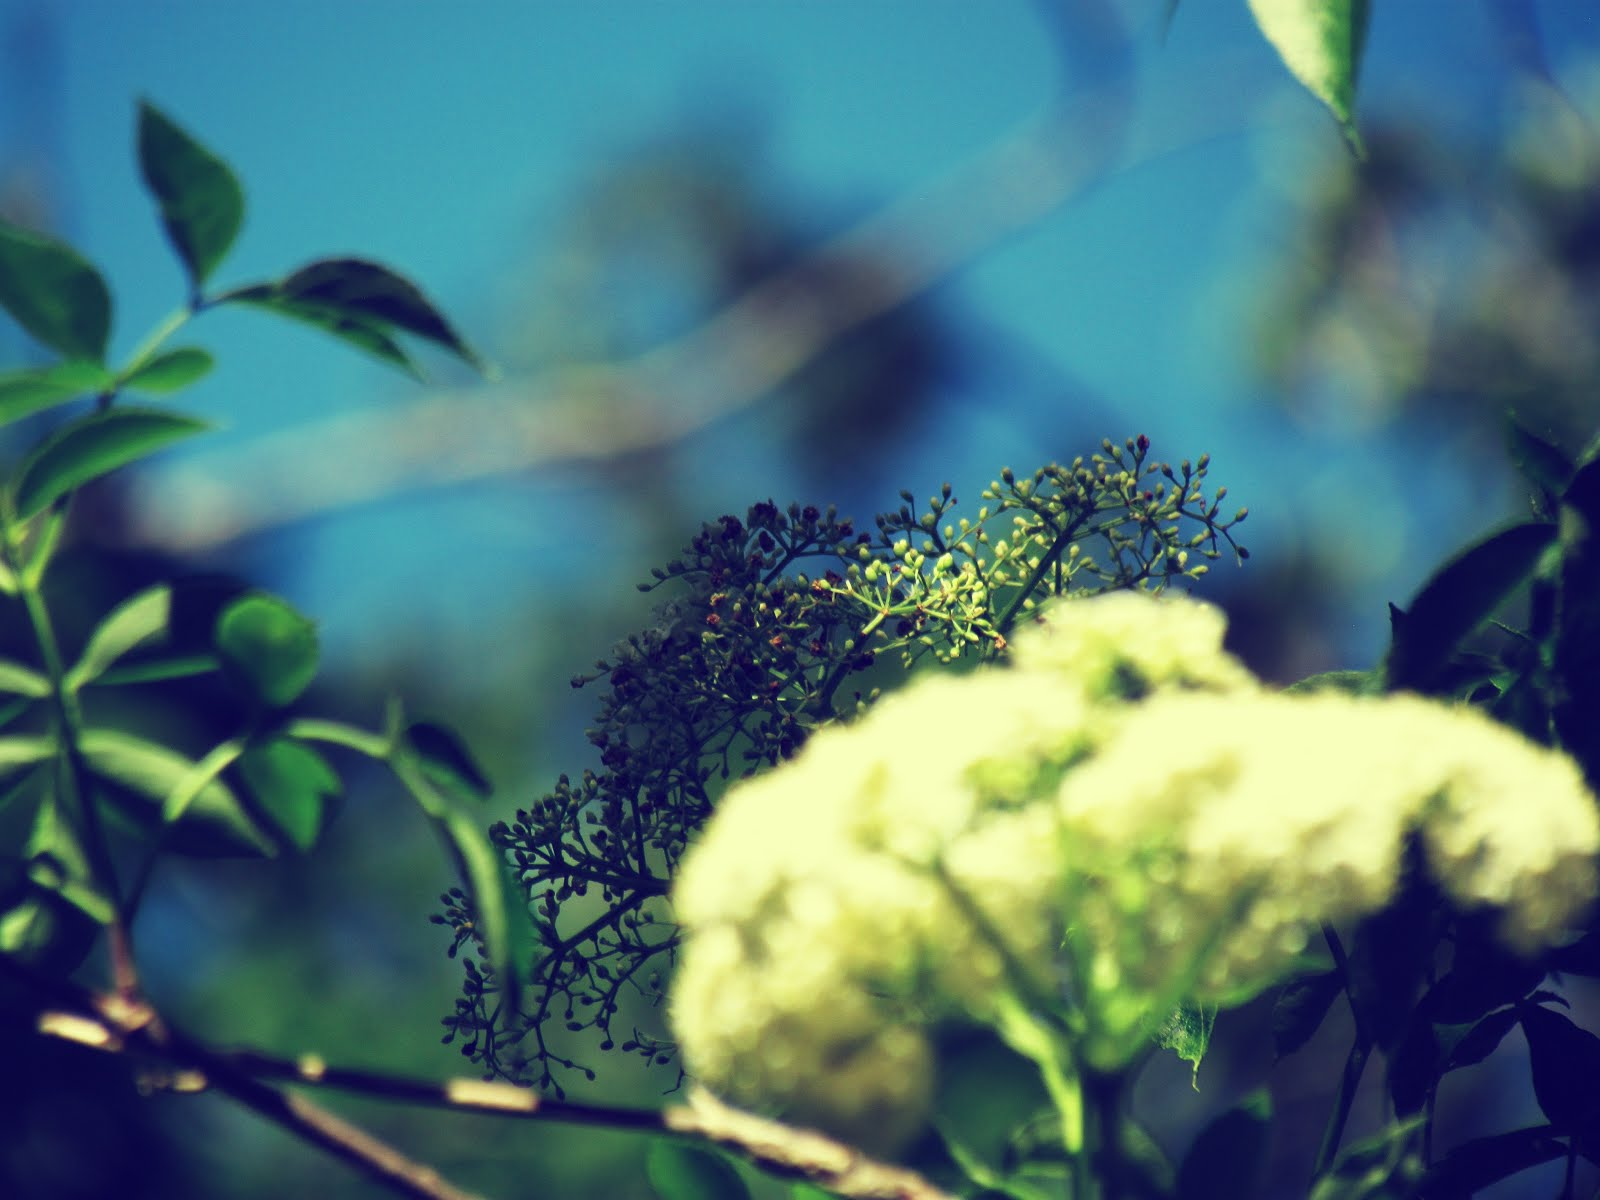 The magic of yarrow flowers and their healing properties + blue skies